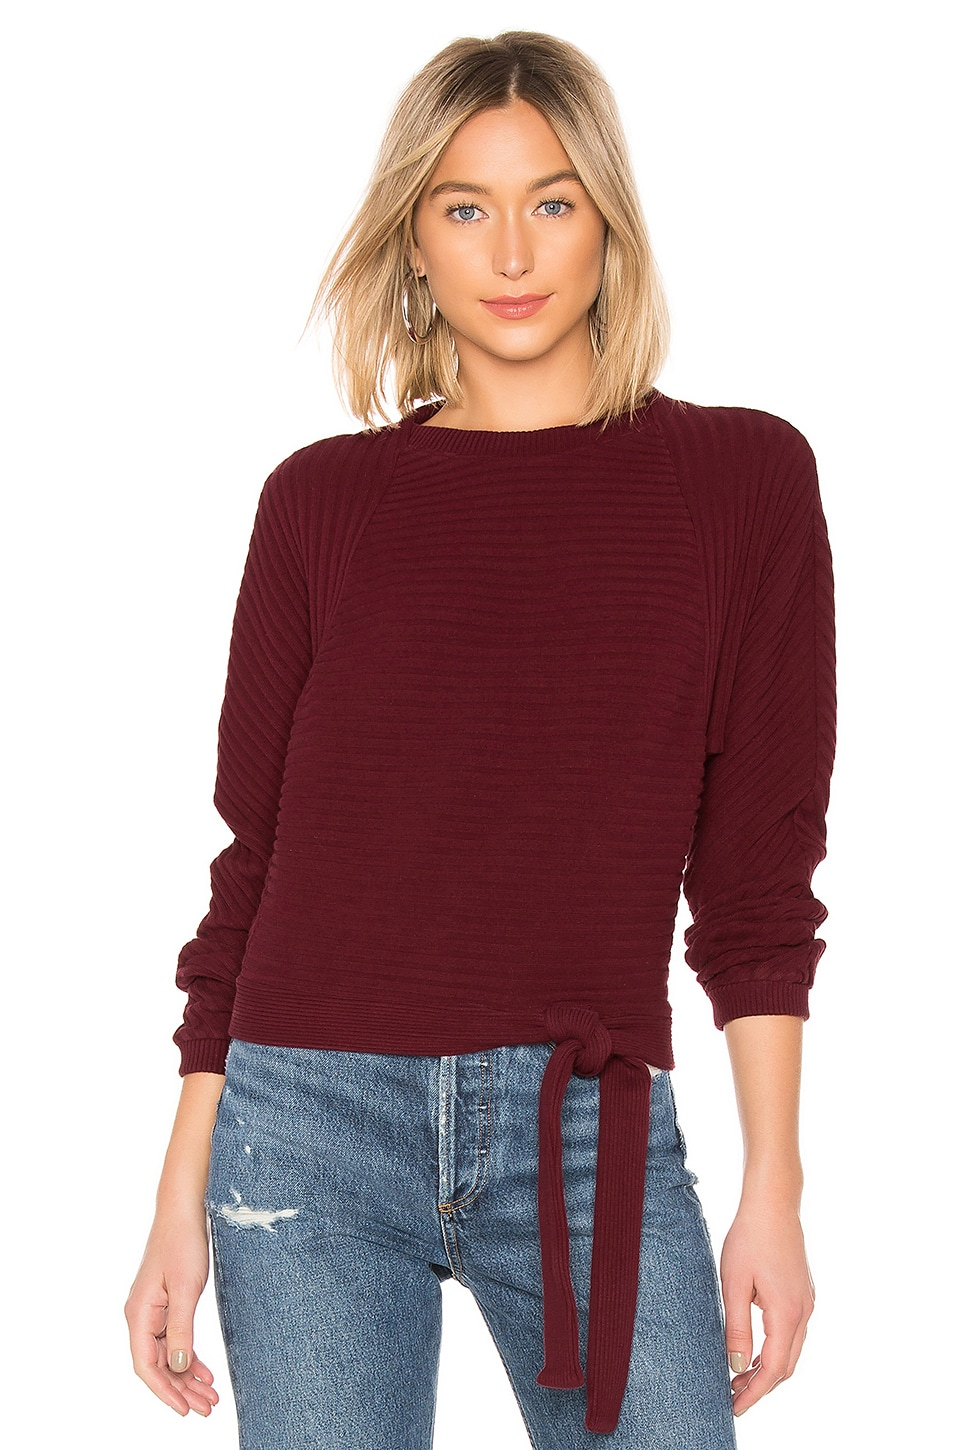 LA Made Foster Pullover in Wineberry